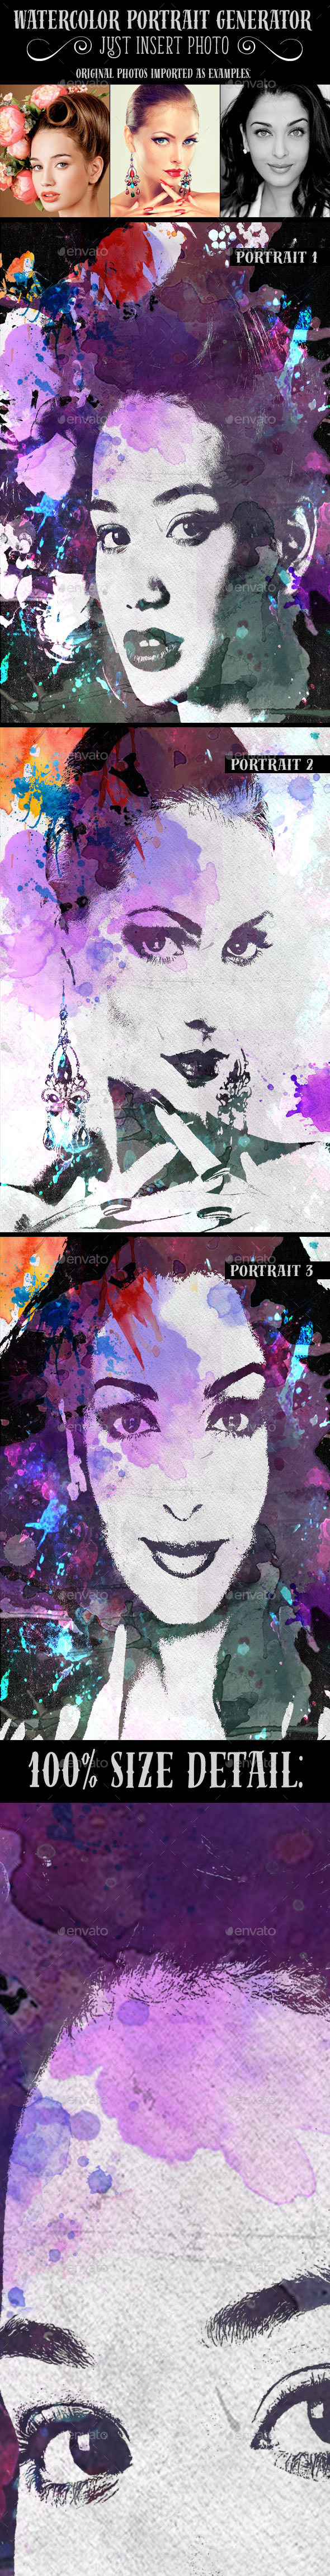 Watercolor Portrait Generator - Artistic Photo Templates